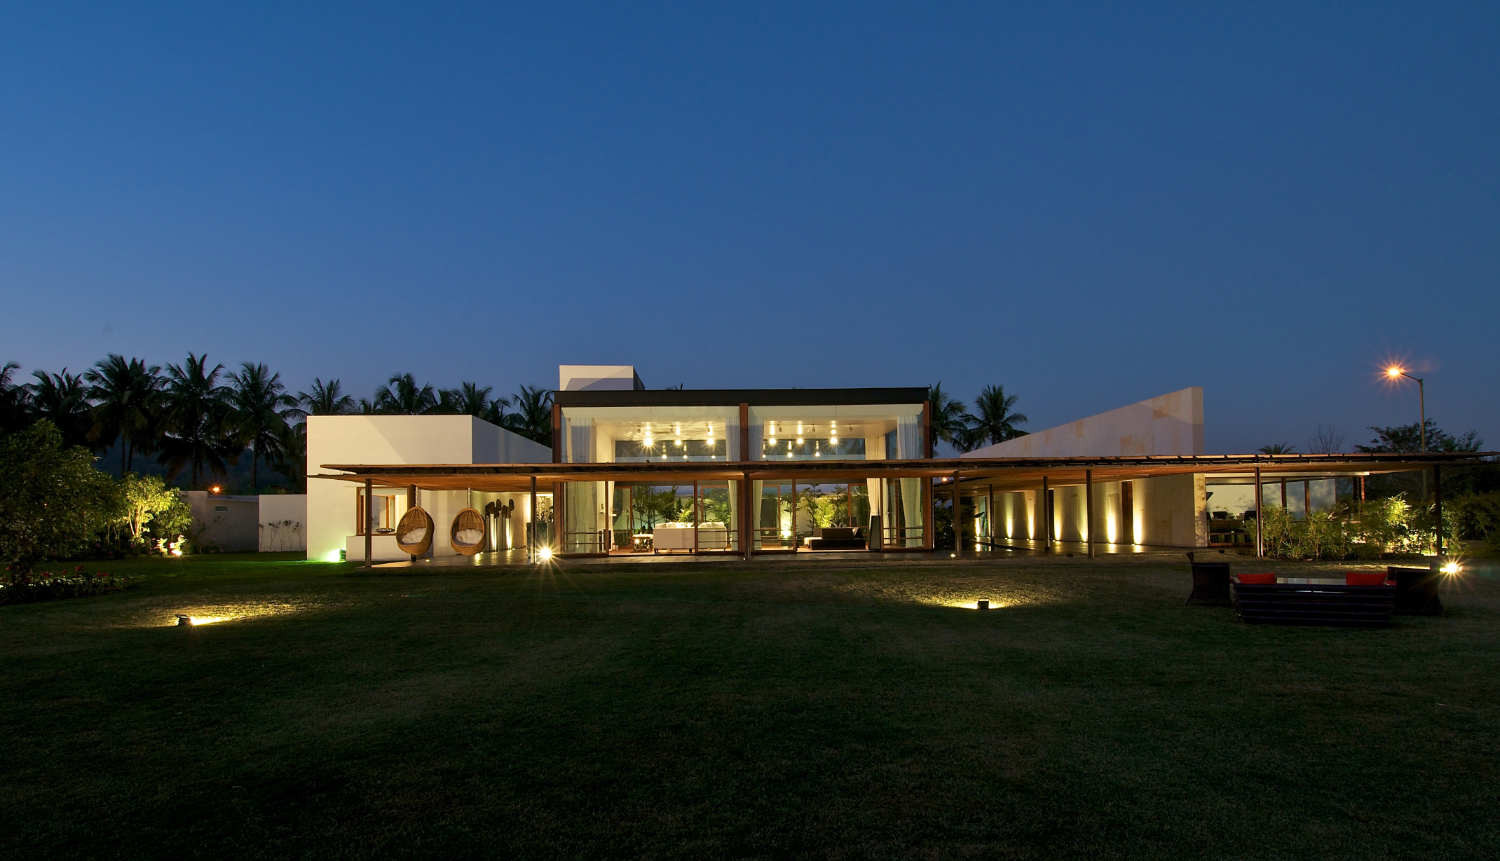 Khadakvasla House / SPASM Design Architects, © Sebastian Zachariah